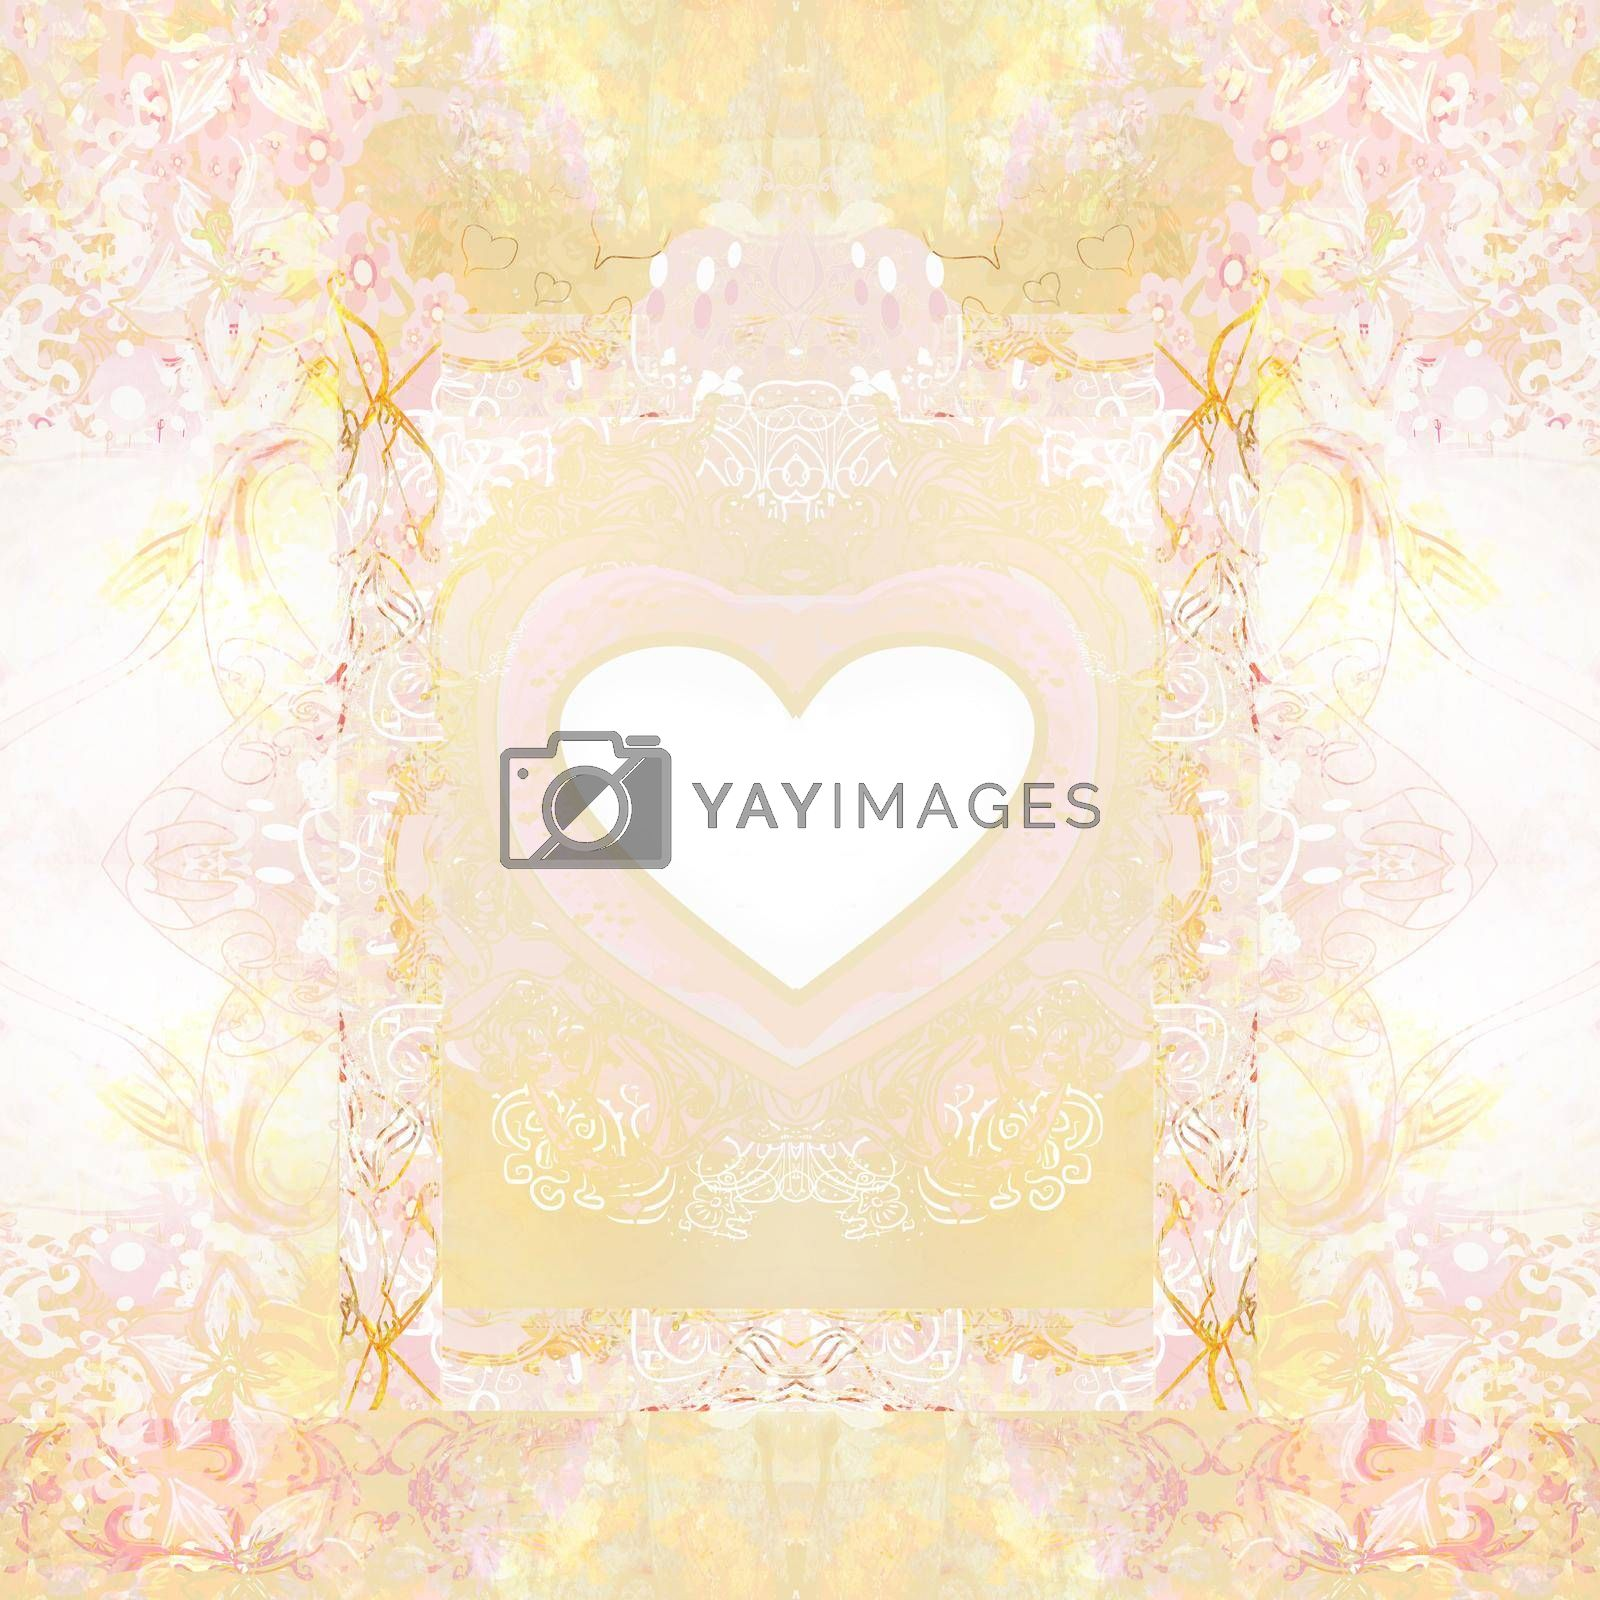 Royalty free image of Vintage decorative Frame with flowers and hearts by JackyBrown